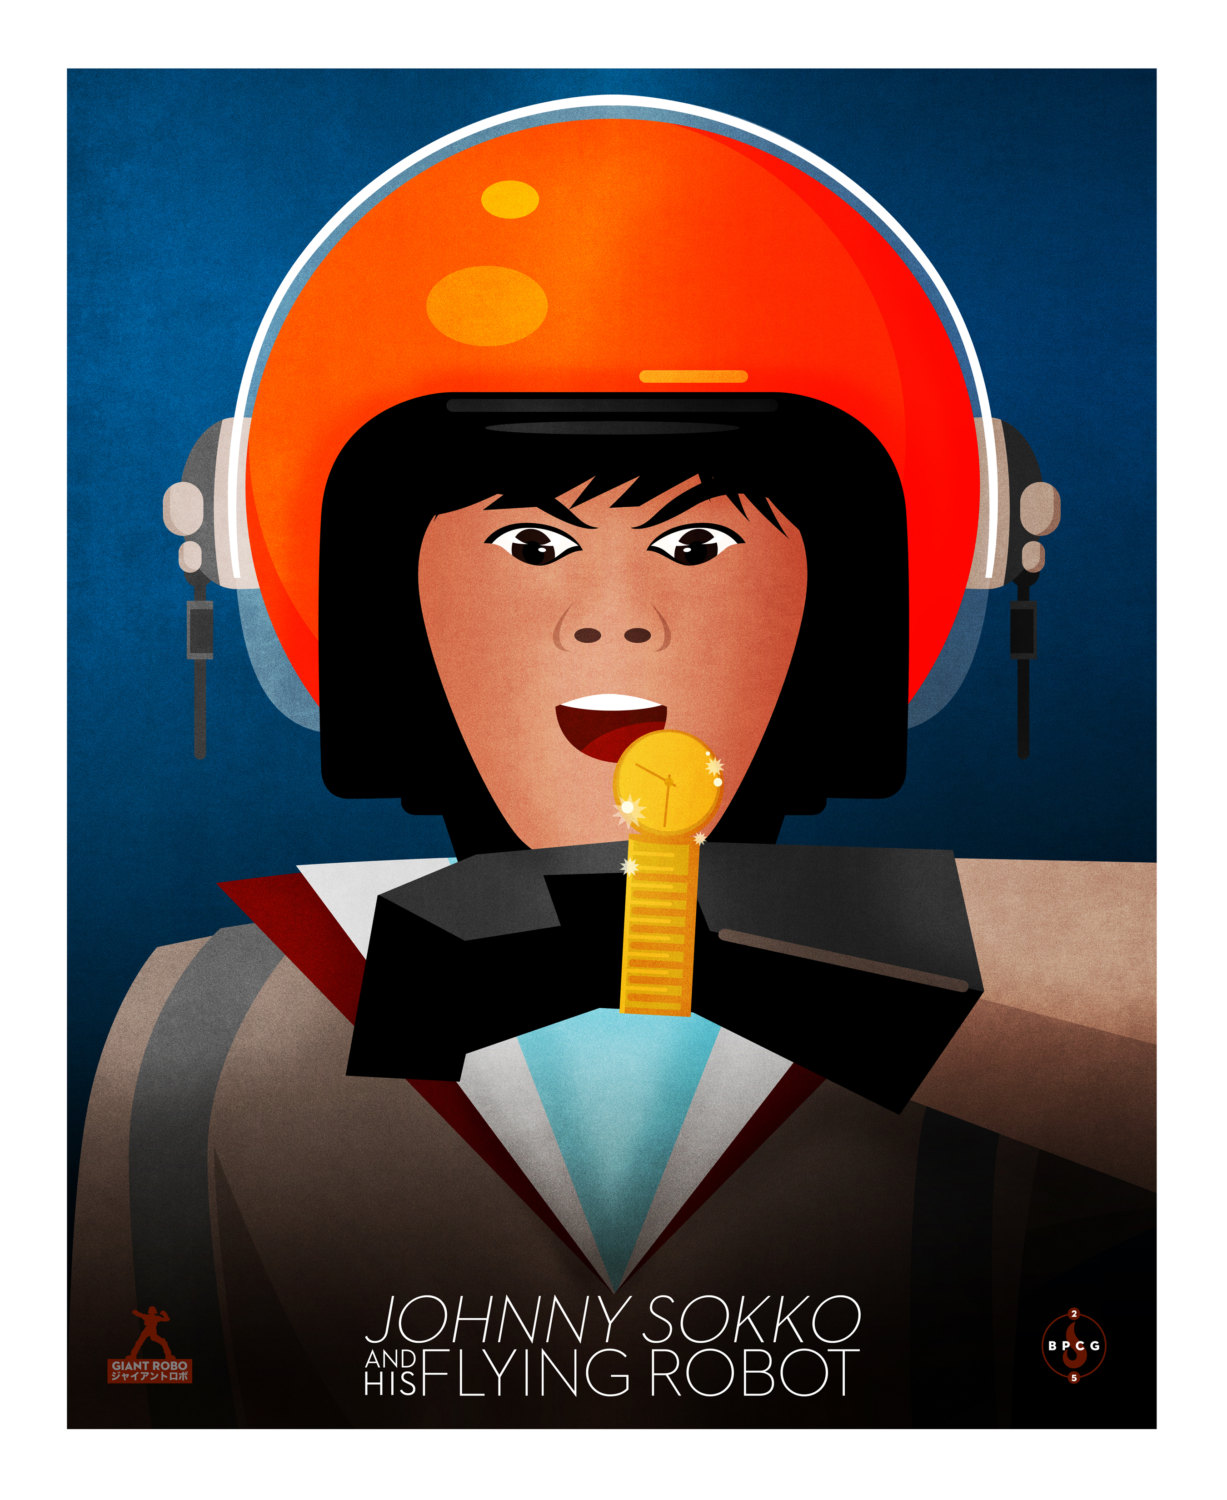 johnny-soklo-and-his-flying-robot-1